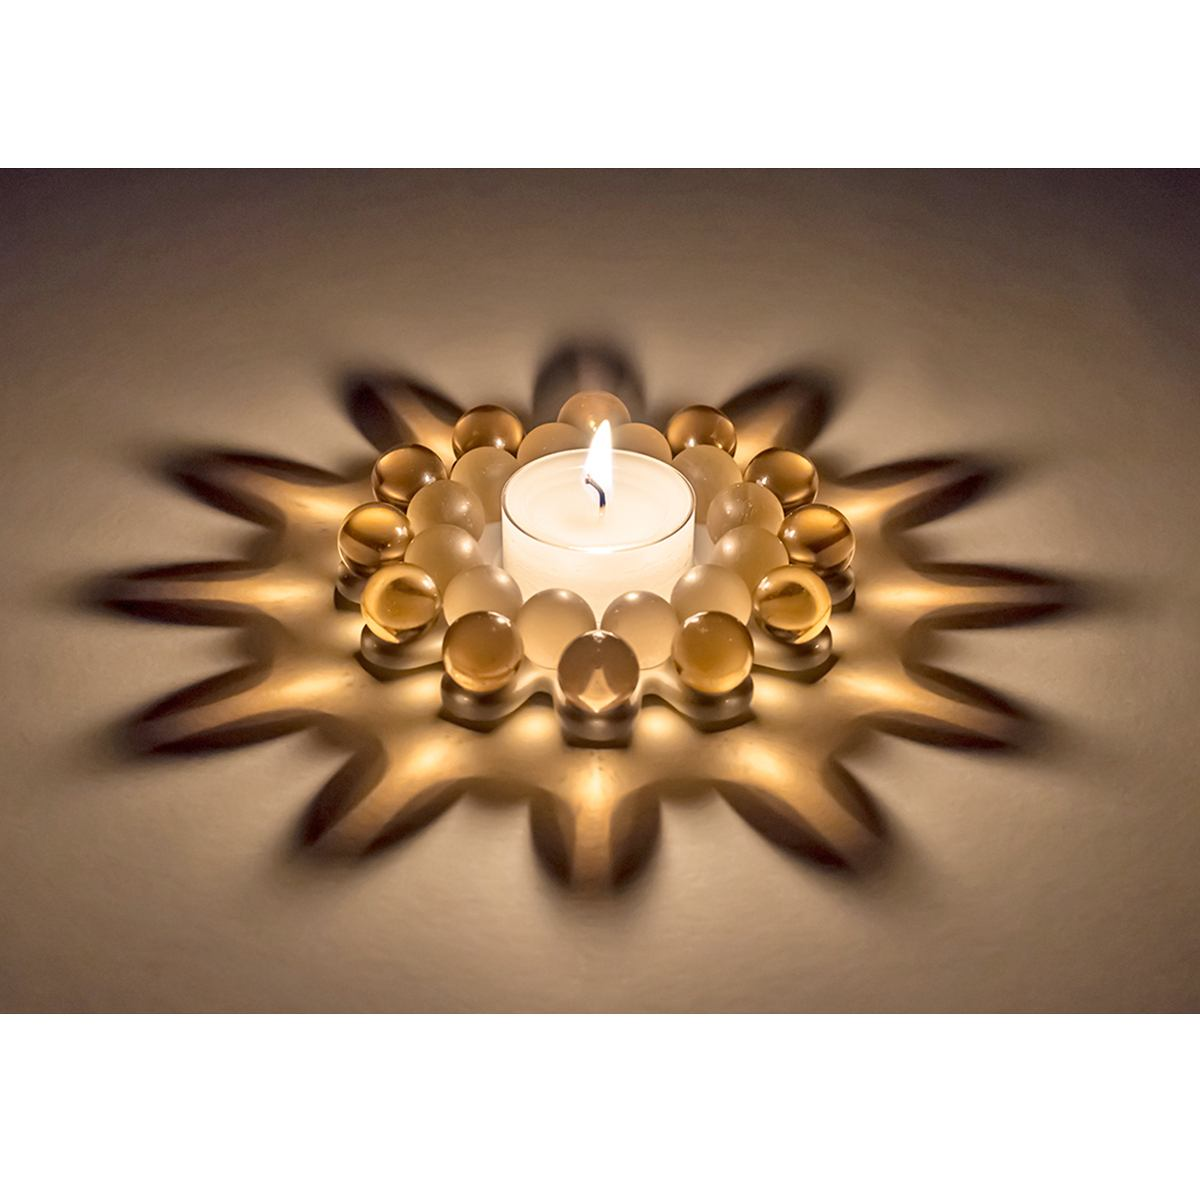 "Tealight Candler Holder ""Glass Bead Star"" with Beautiful Light Refraction – Whisky"